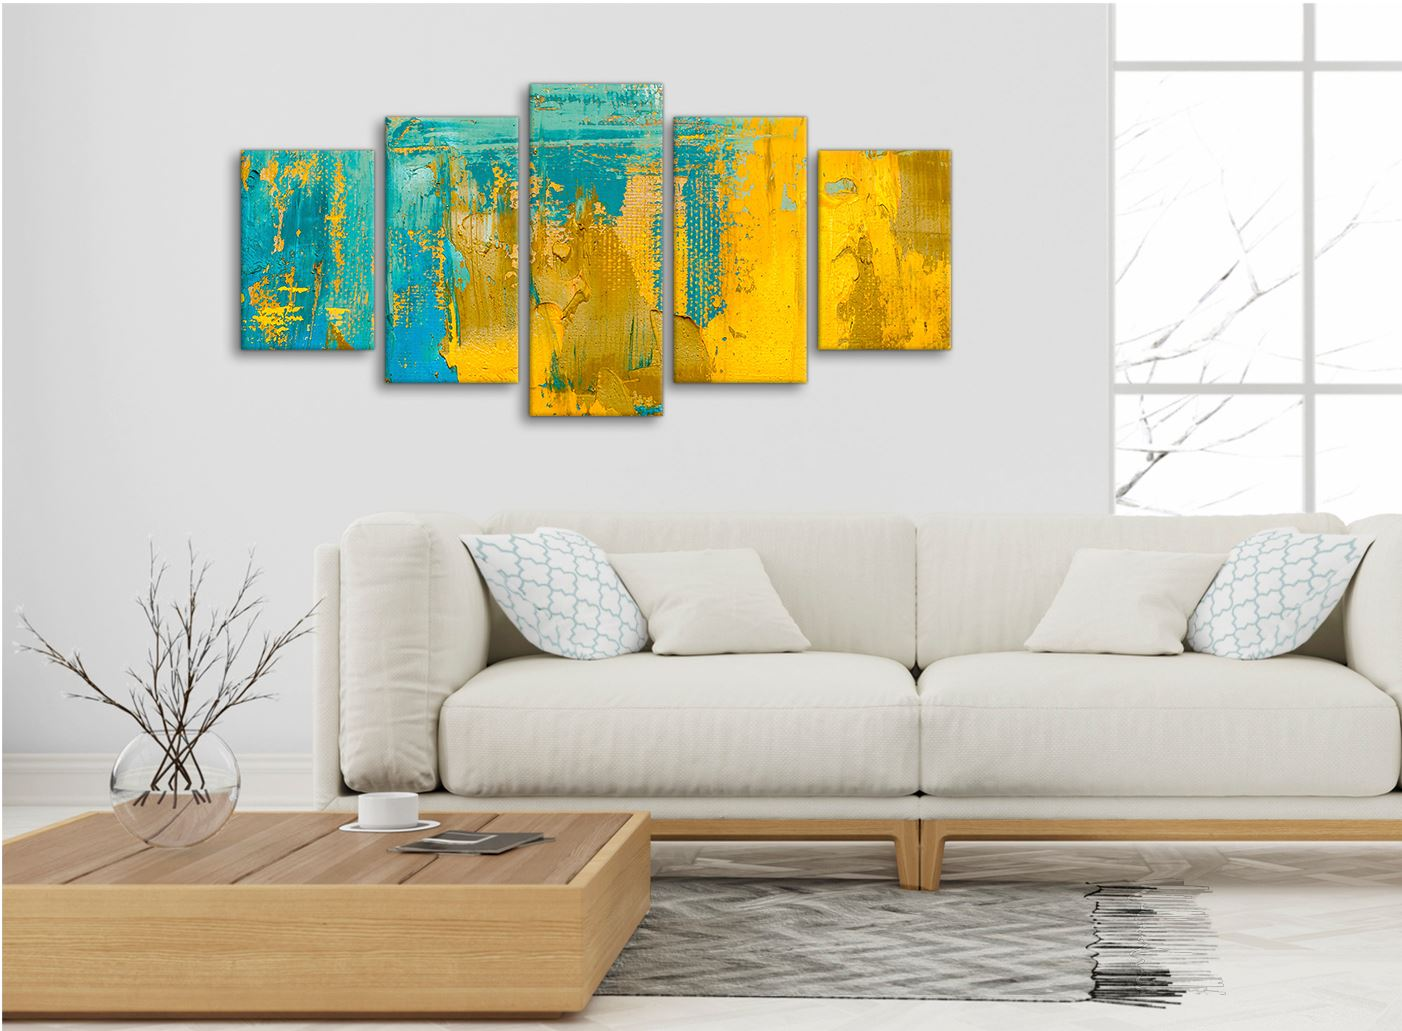 Mustard Yellow And Teal Turquoise Abstract Dining Room Canvas Wall Art Decor Ebay